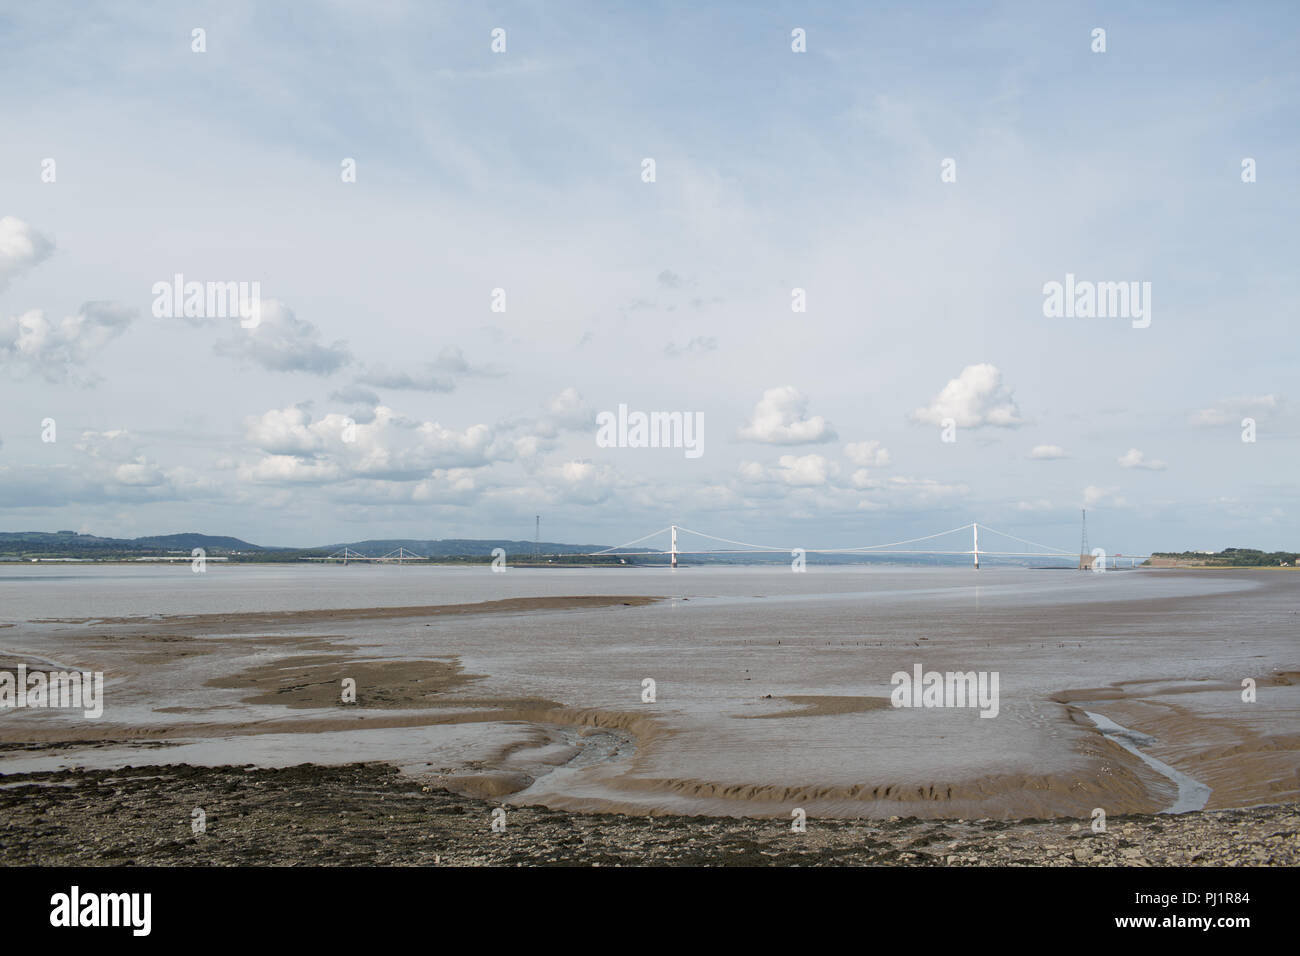 View of the Severn Bridge and the River Severn at low tide from the English side. Suspension Bridge. Tolls due to end in 2018. M48 motorway - Stock Image